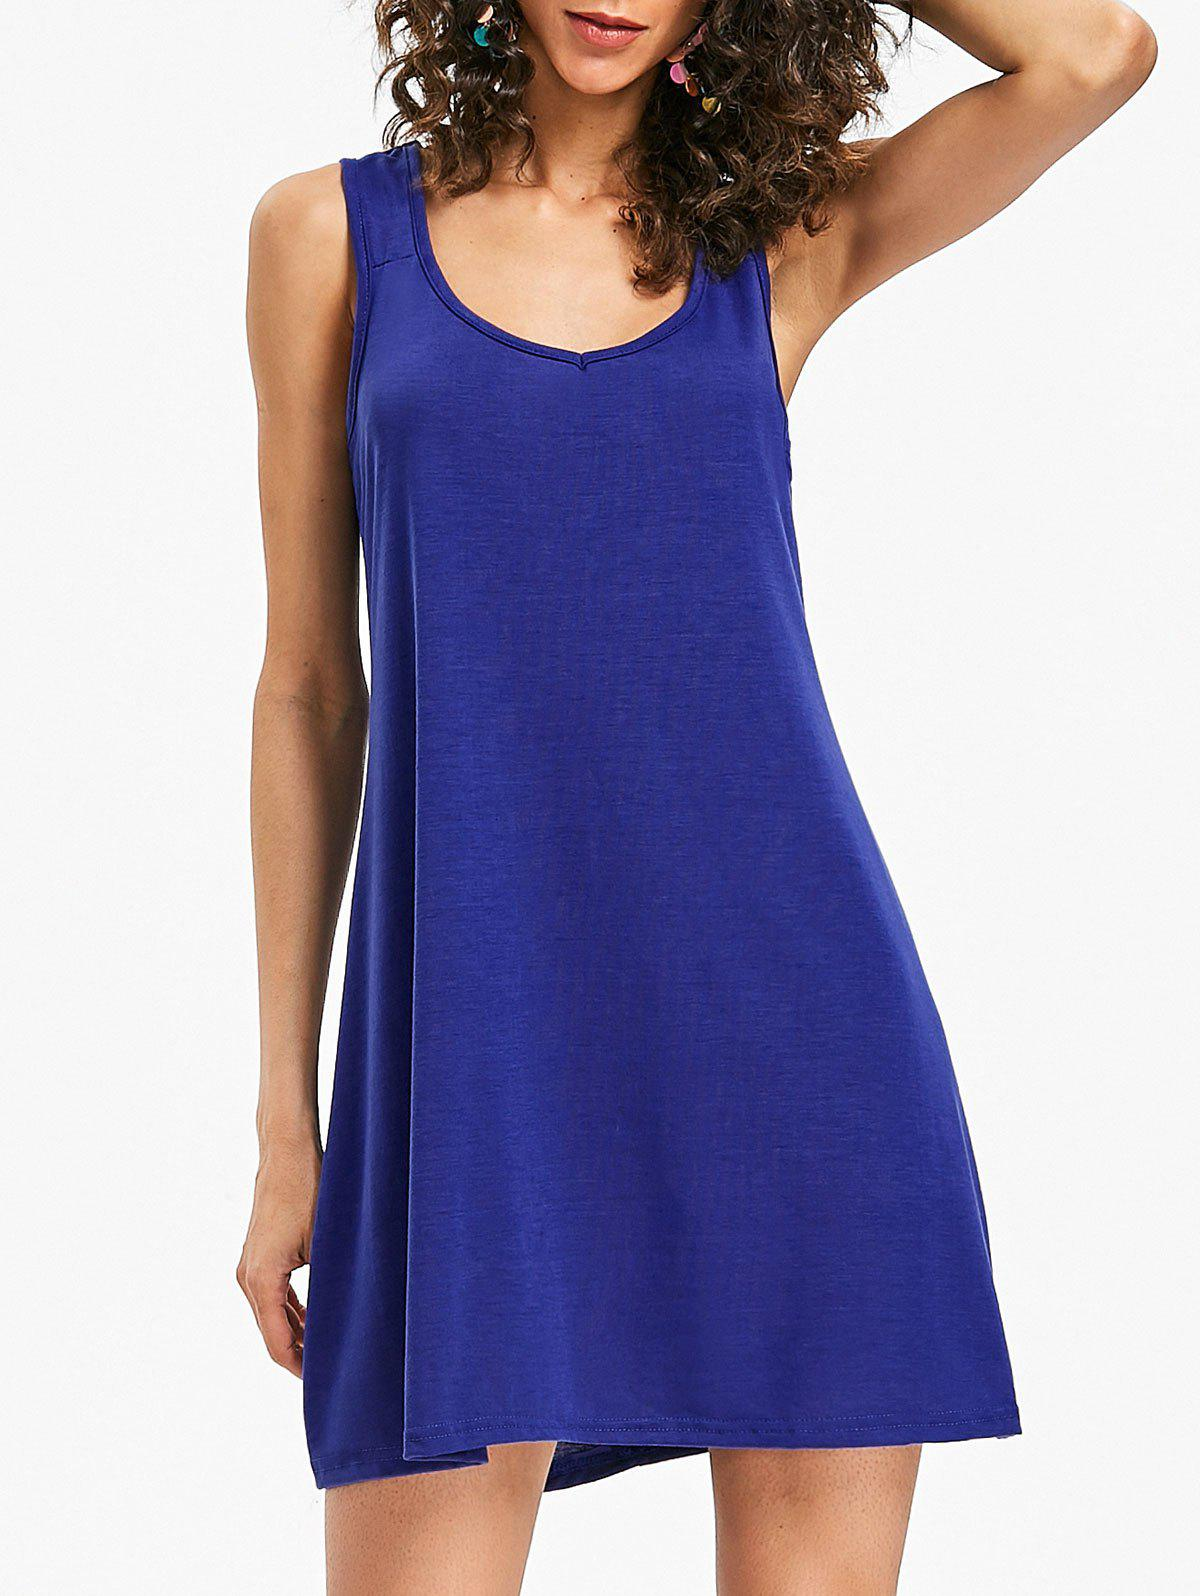 Mini Sleeveless Shift Dress - SAPPHIRE BLUE S